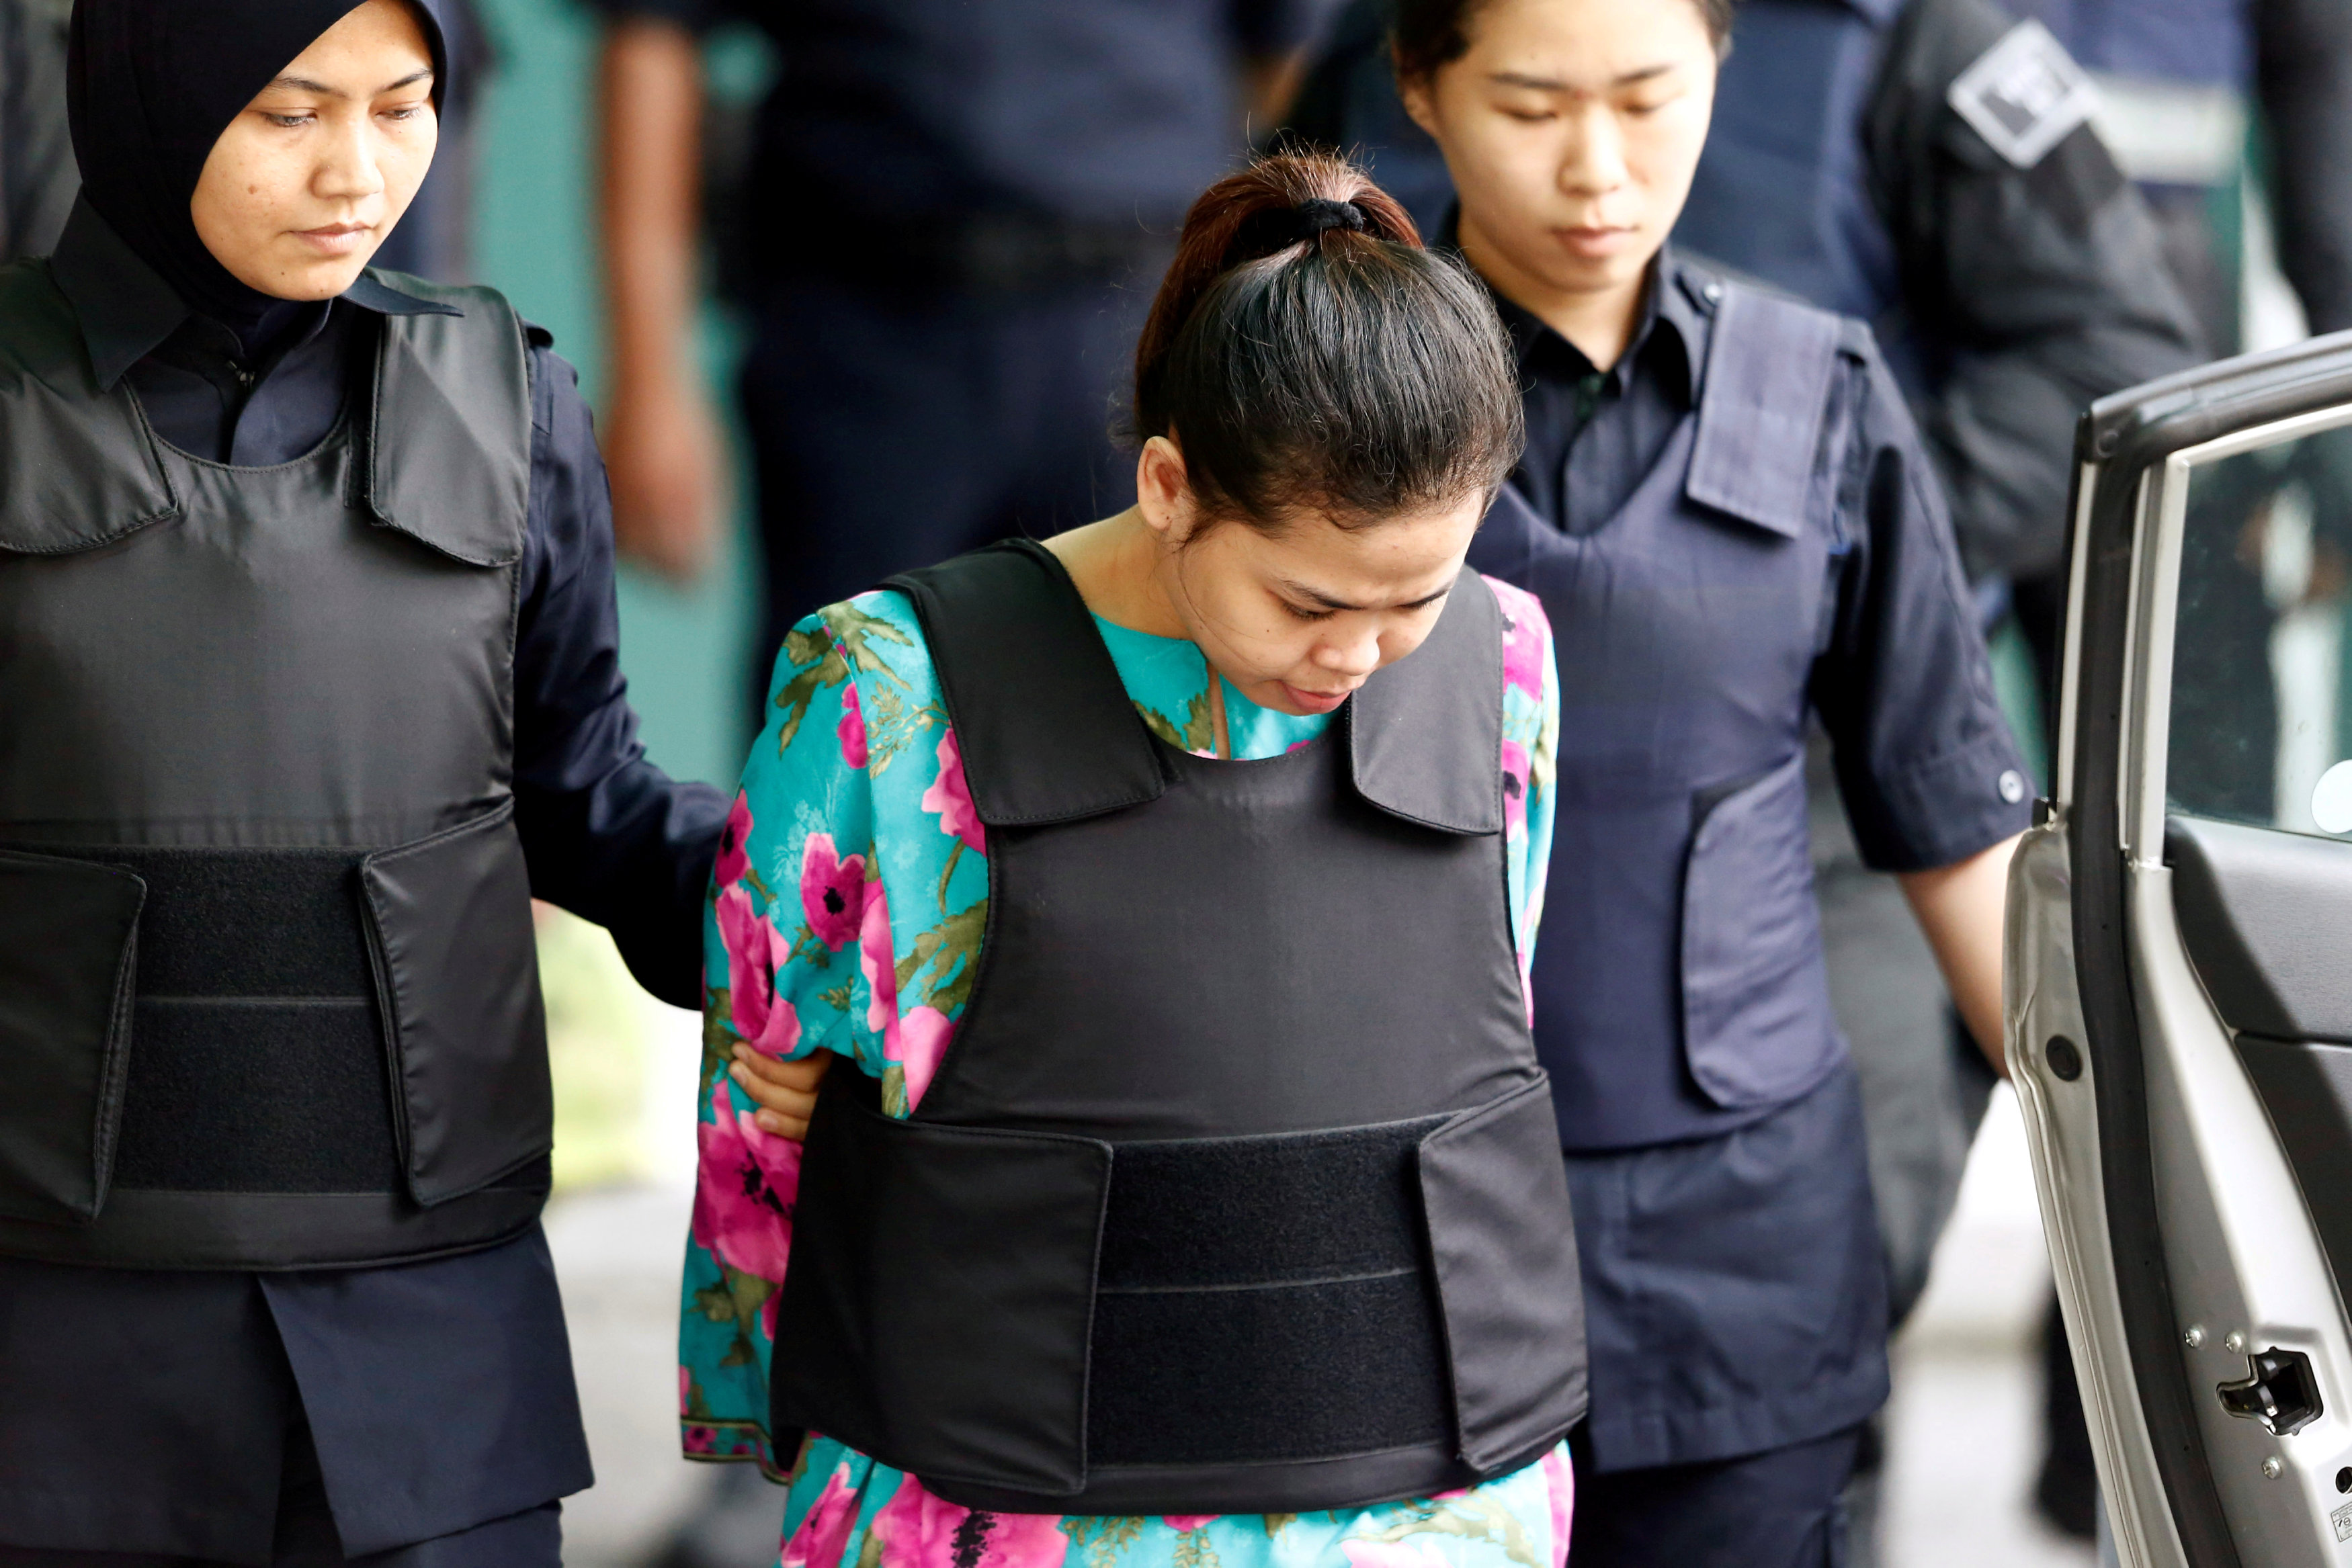 Indonesian Siti Aisyah who is on trial for the killing of Kim Jong Nam, the estranged half-brother of North Korea's leader, is escorted as she leaves at the Department of Chemistry in Petaling Jaya, near Kuala Lumpur, Malaysia